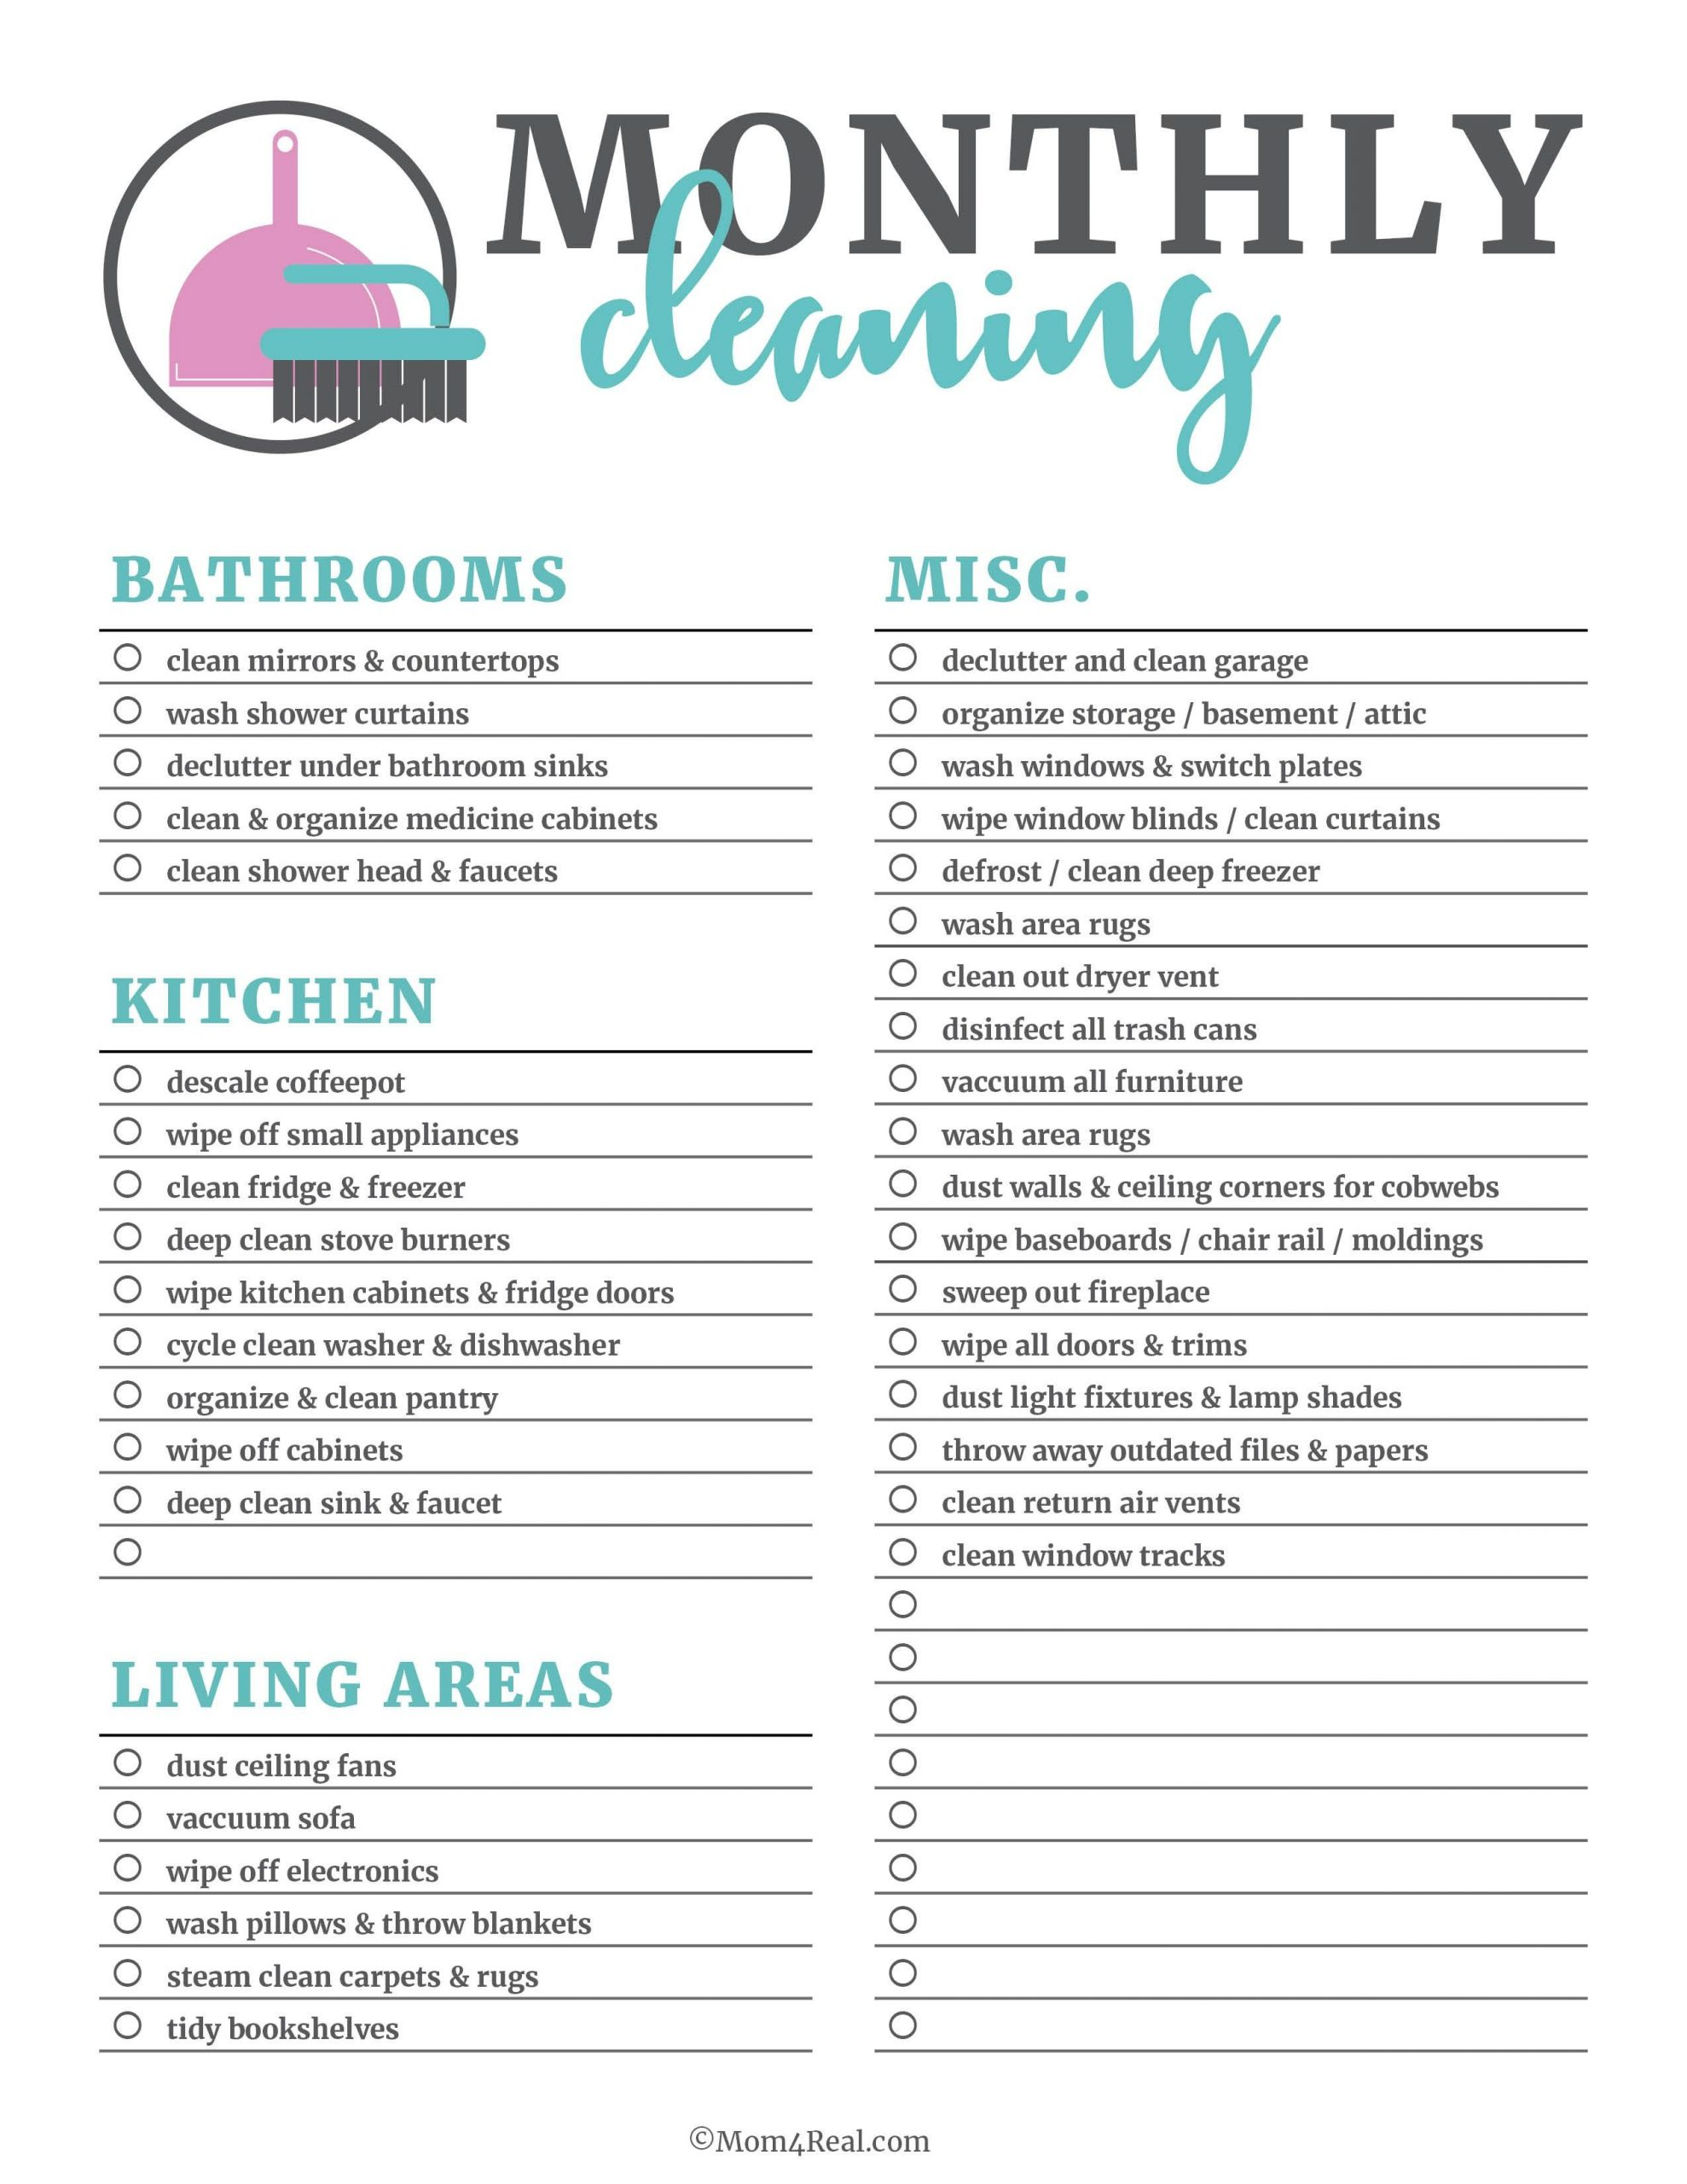 New Monthly Cleaning Schedule Template xls xlsformat